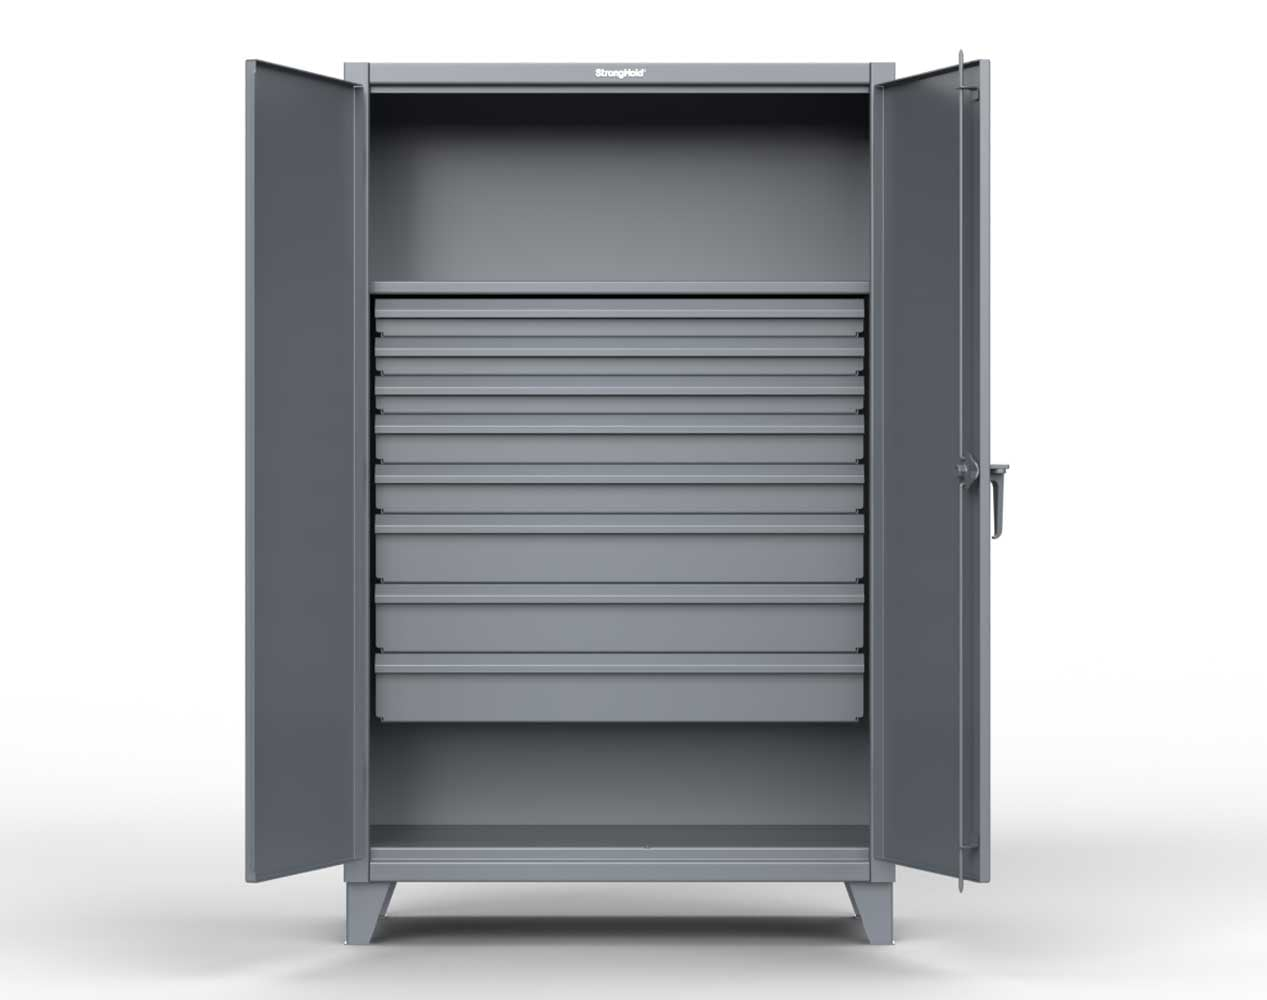 Extra Heavy Duty 12 GA Cabinet with 8 Drawers, 1 Shelf – 36 In. W x 24 In. D x 78 In. H